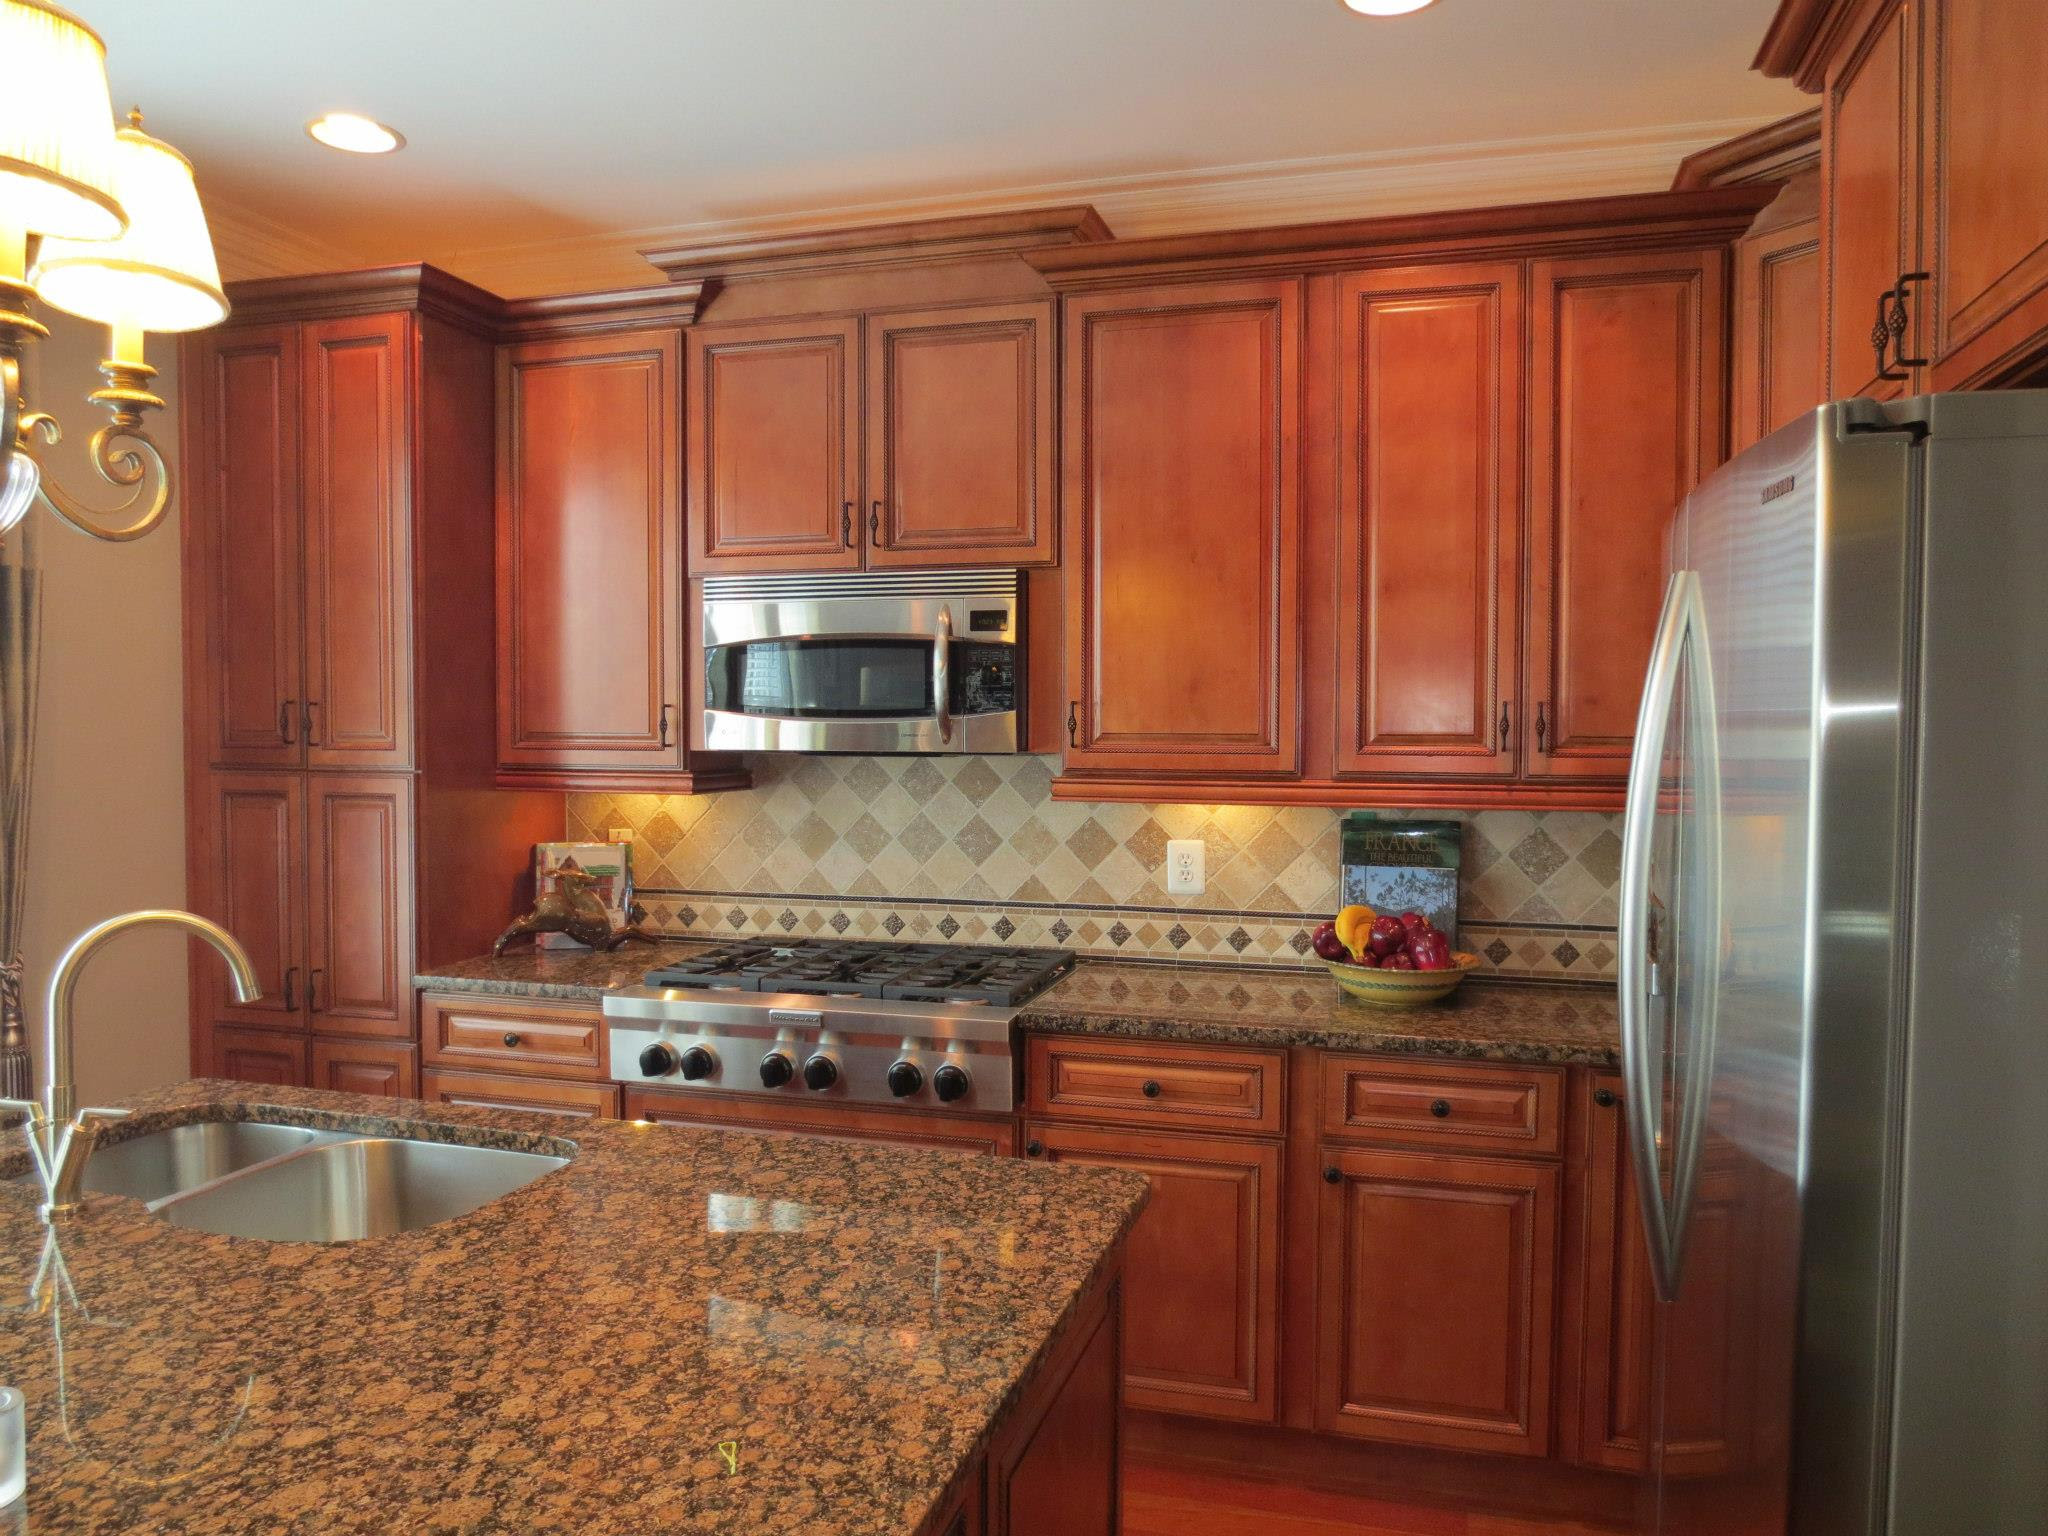 Bruno - Mediterranean - Kitchen - Orange County - by ...